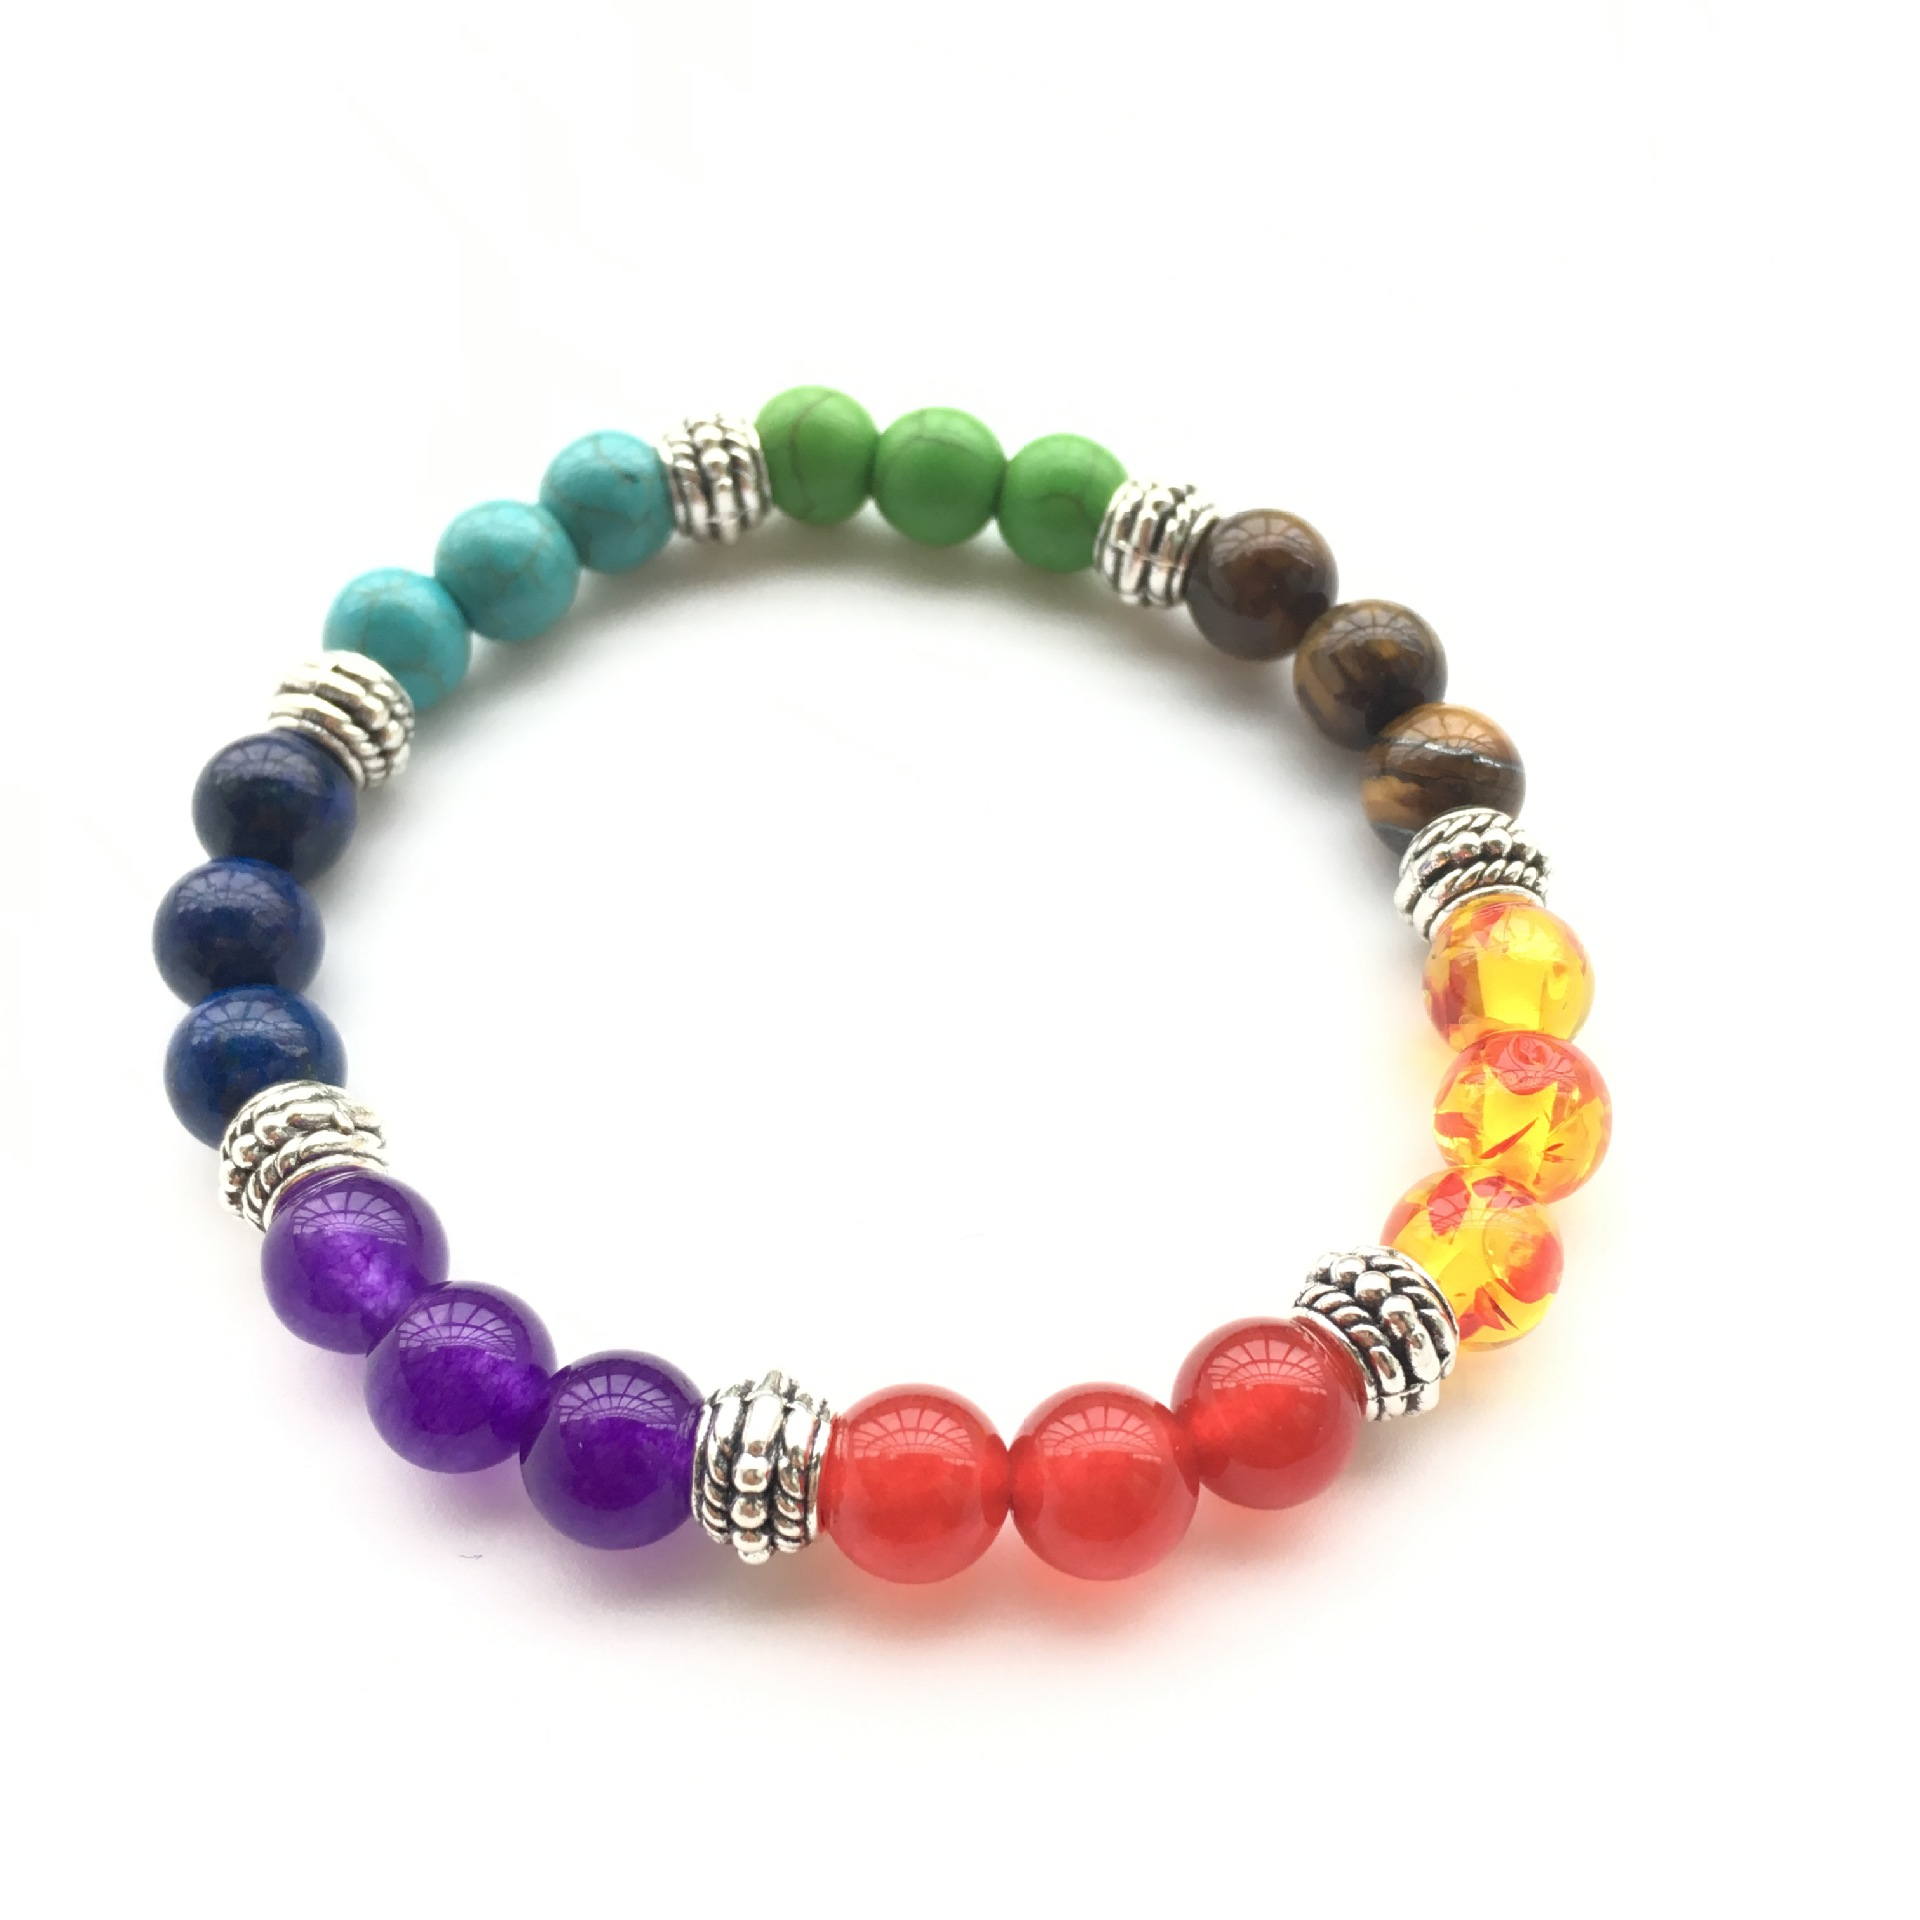 KD002 European and American fashion colored stone beaded bracelet retro simple stone alloy elastic bracelet for sale